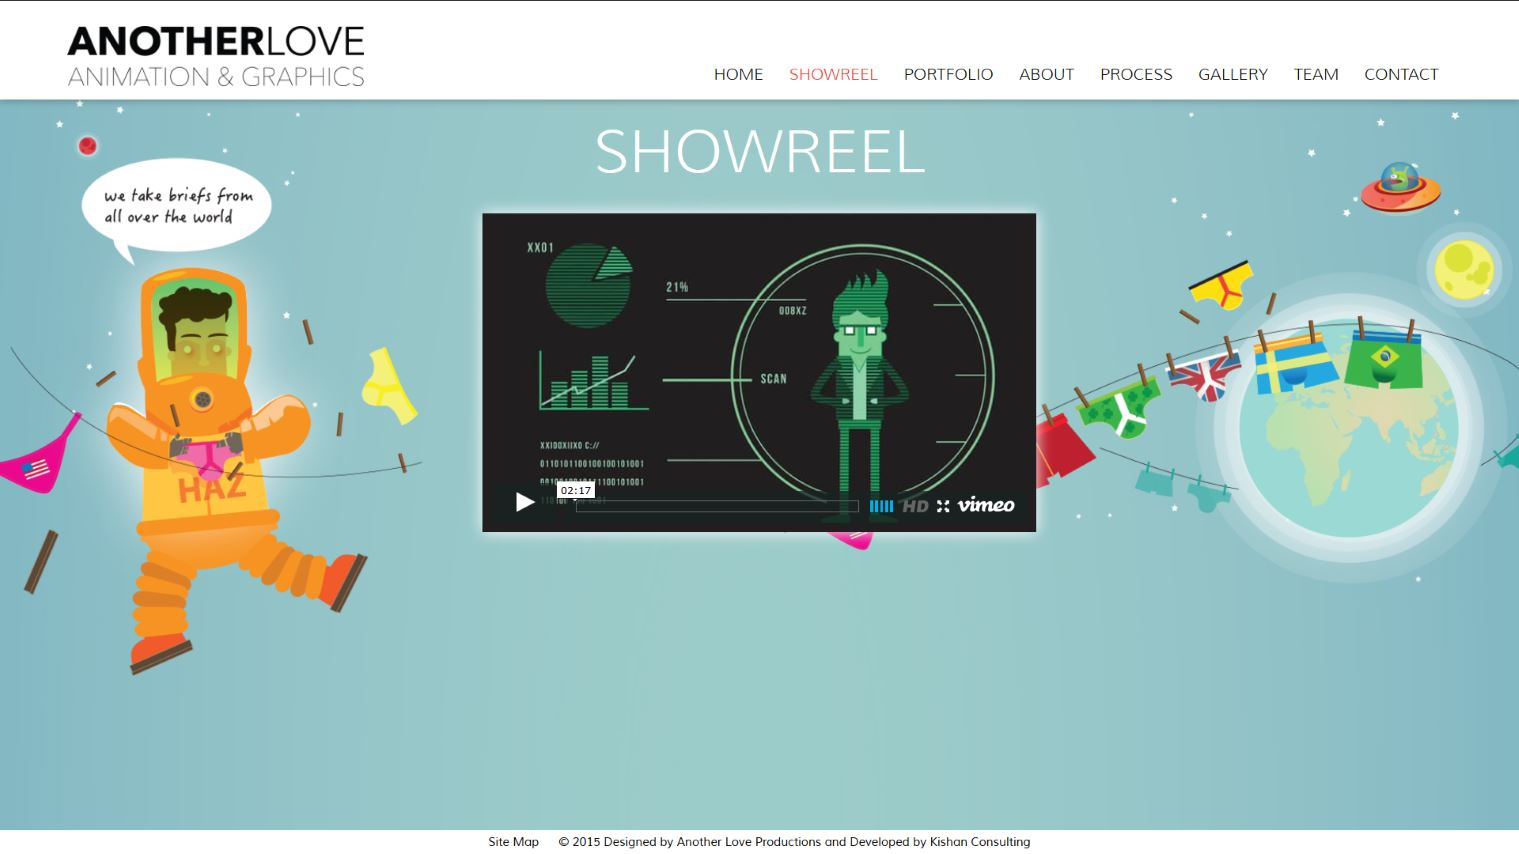 Another Love Studio - Showreel Page